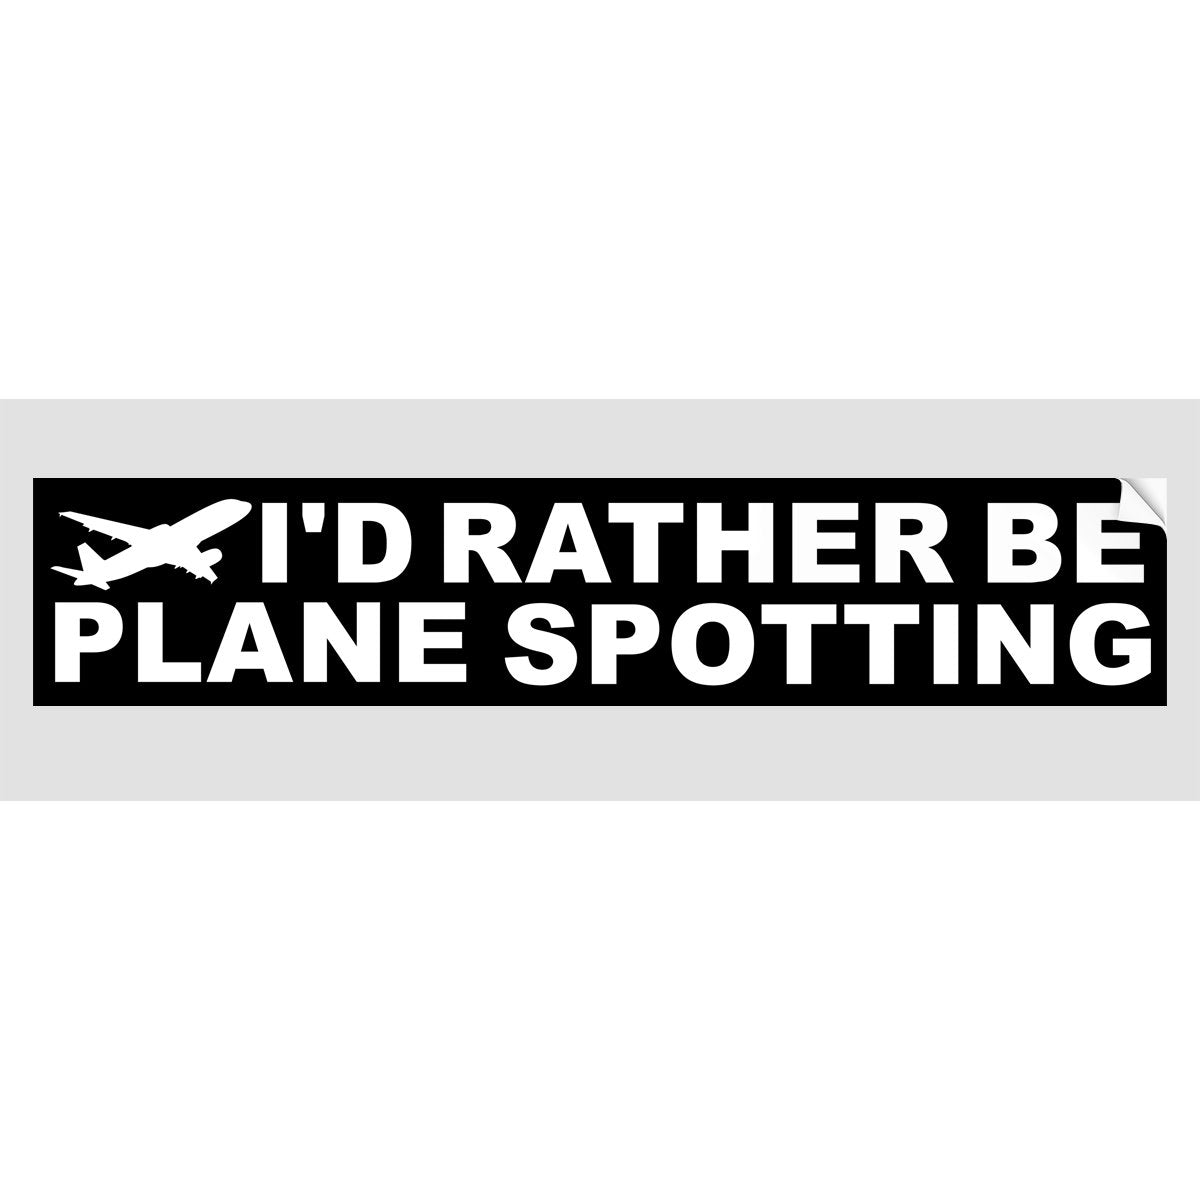 ID RATHER BE PLANE SPOTTING Sticker